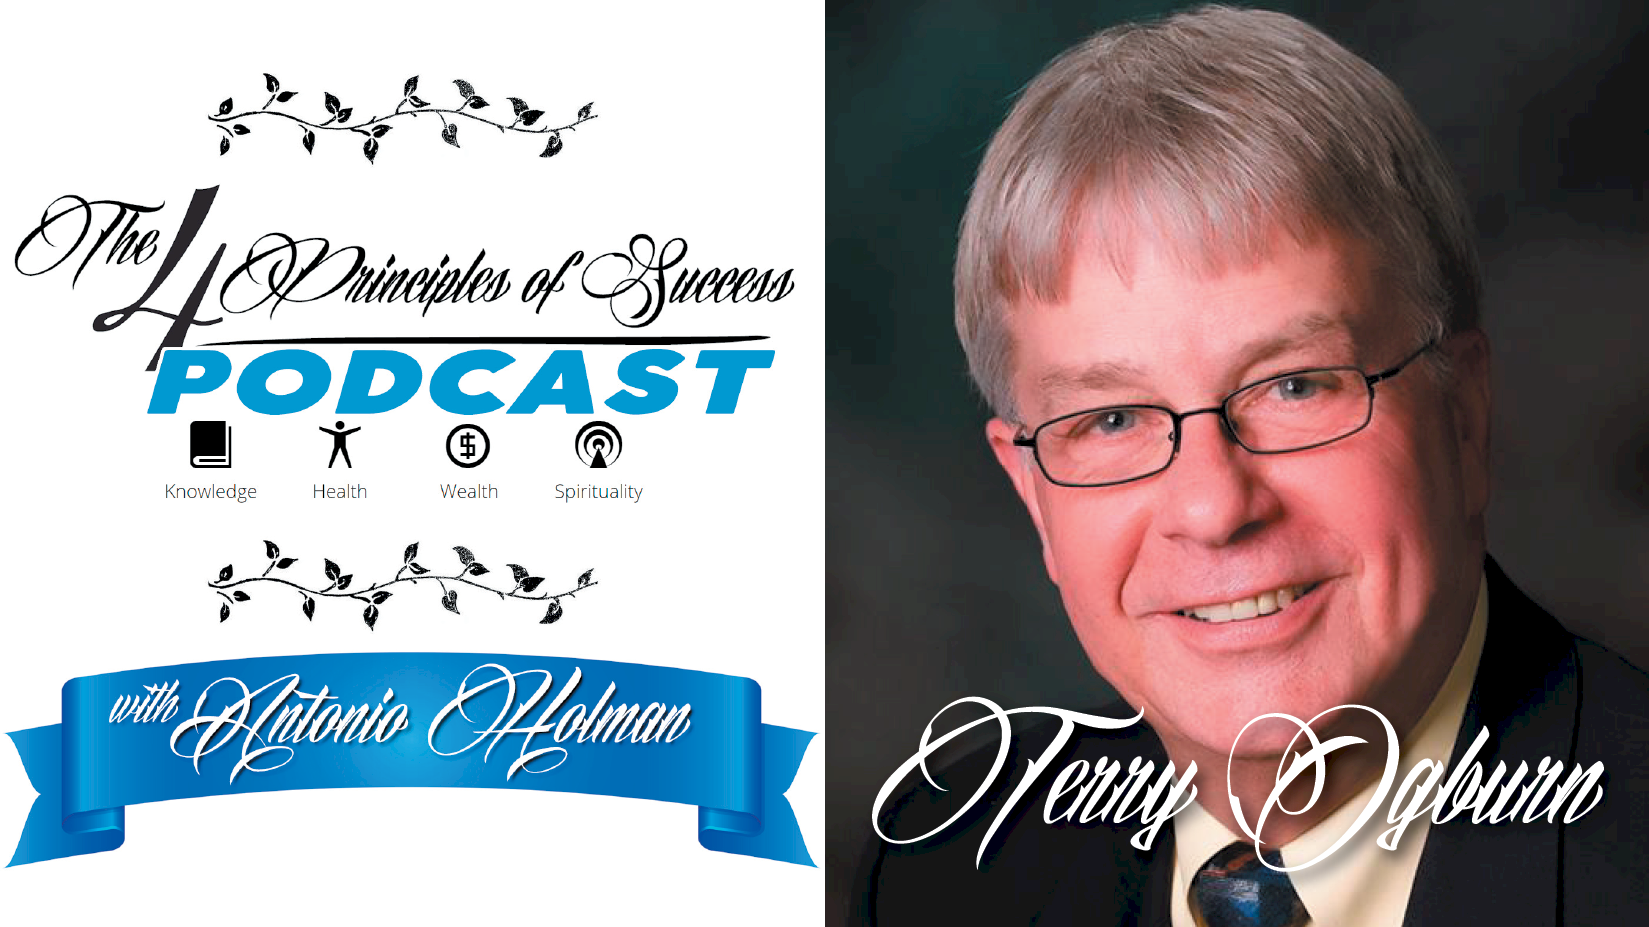 The 4 Principles of Success guest Terry Ogburn